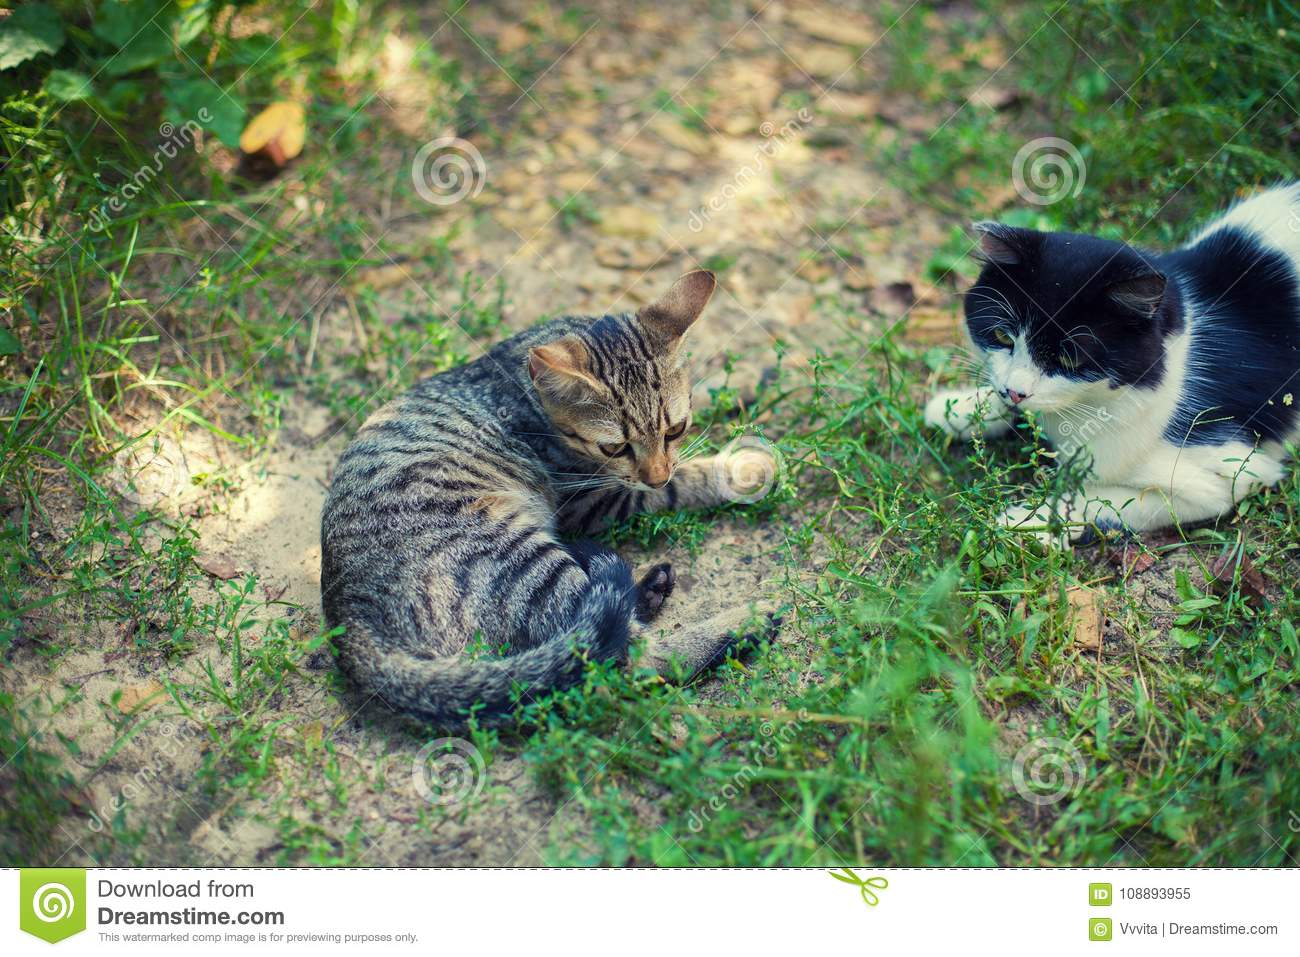 Black and white and striped cats lay on the grass in the yard